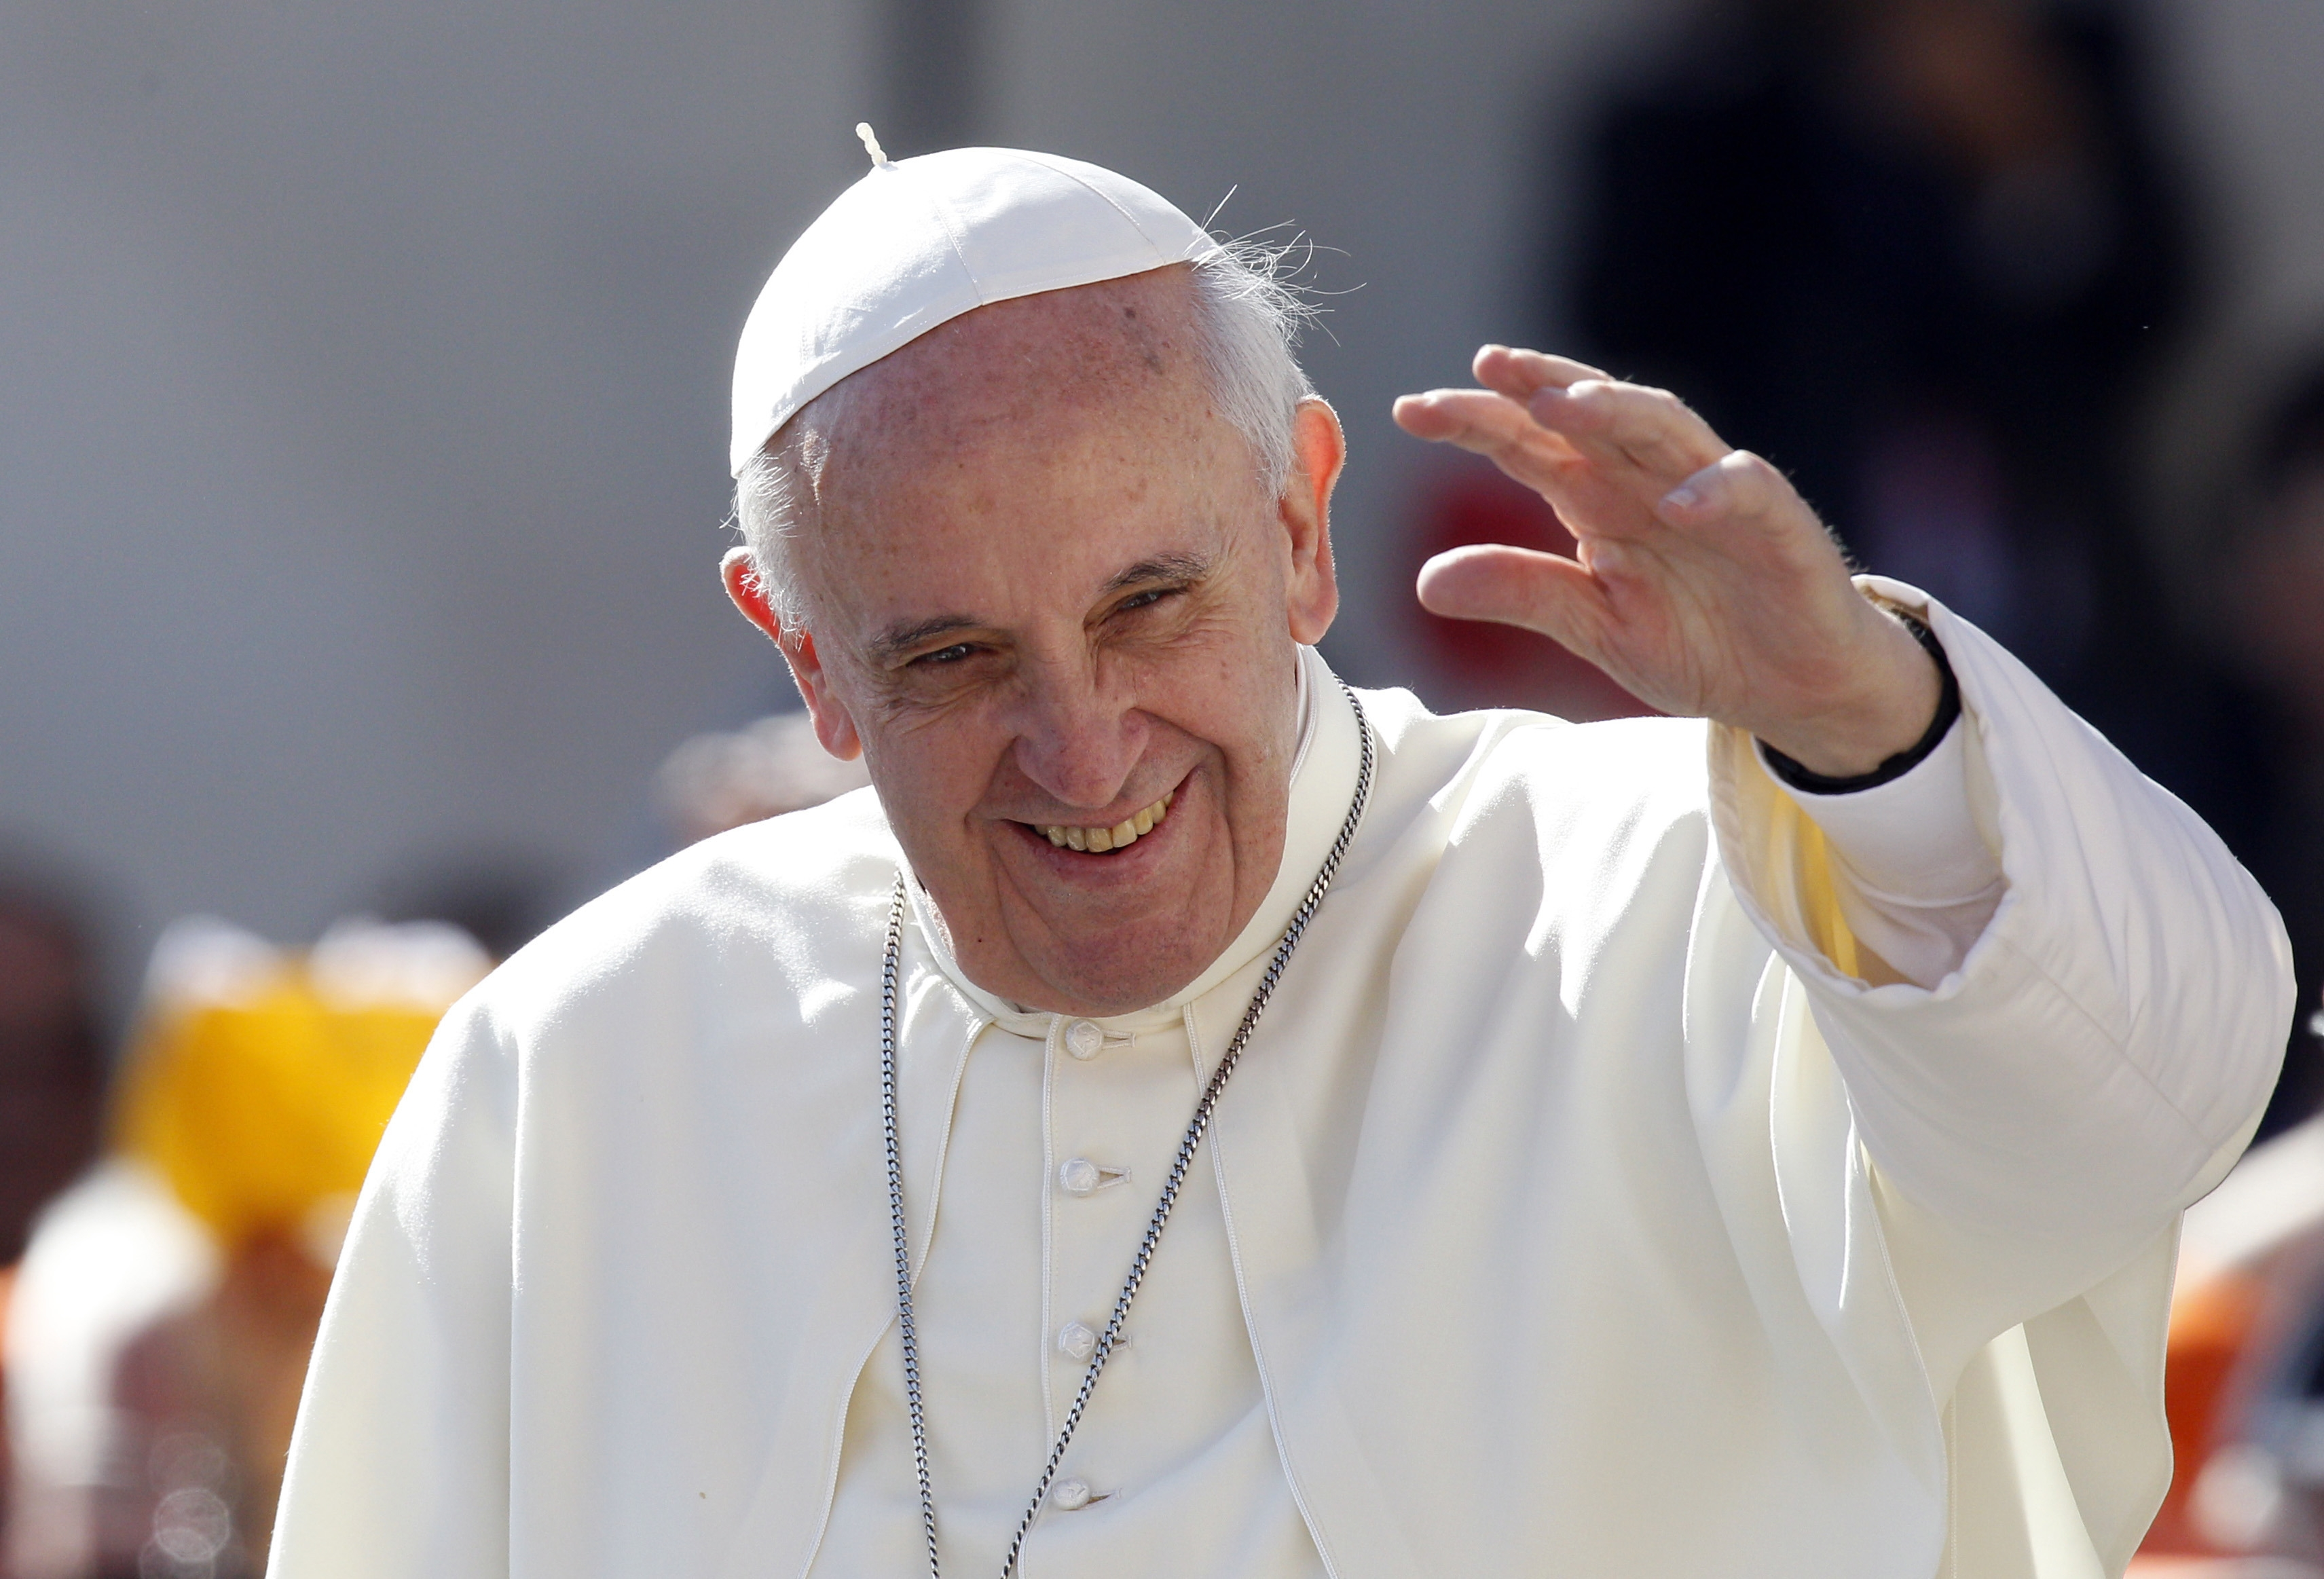 Pope Francis waves to the faithful as he arrives for his weekly general audience Wednesday in St. Peter's Square at the Vatican.